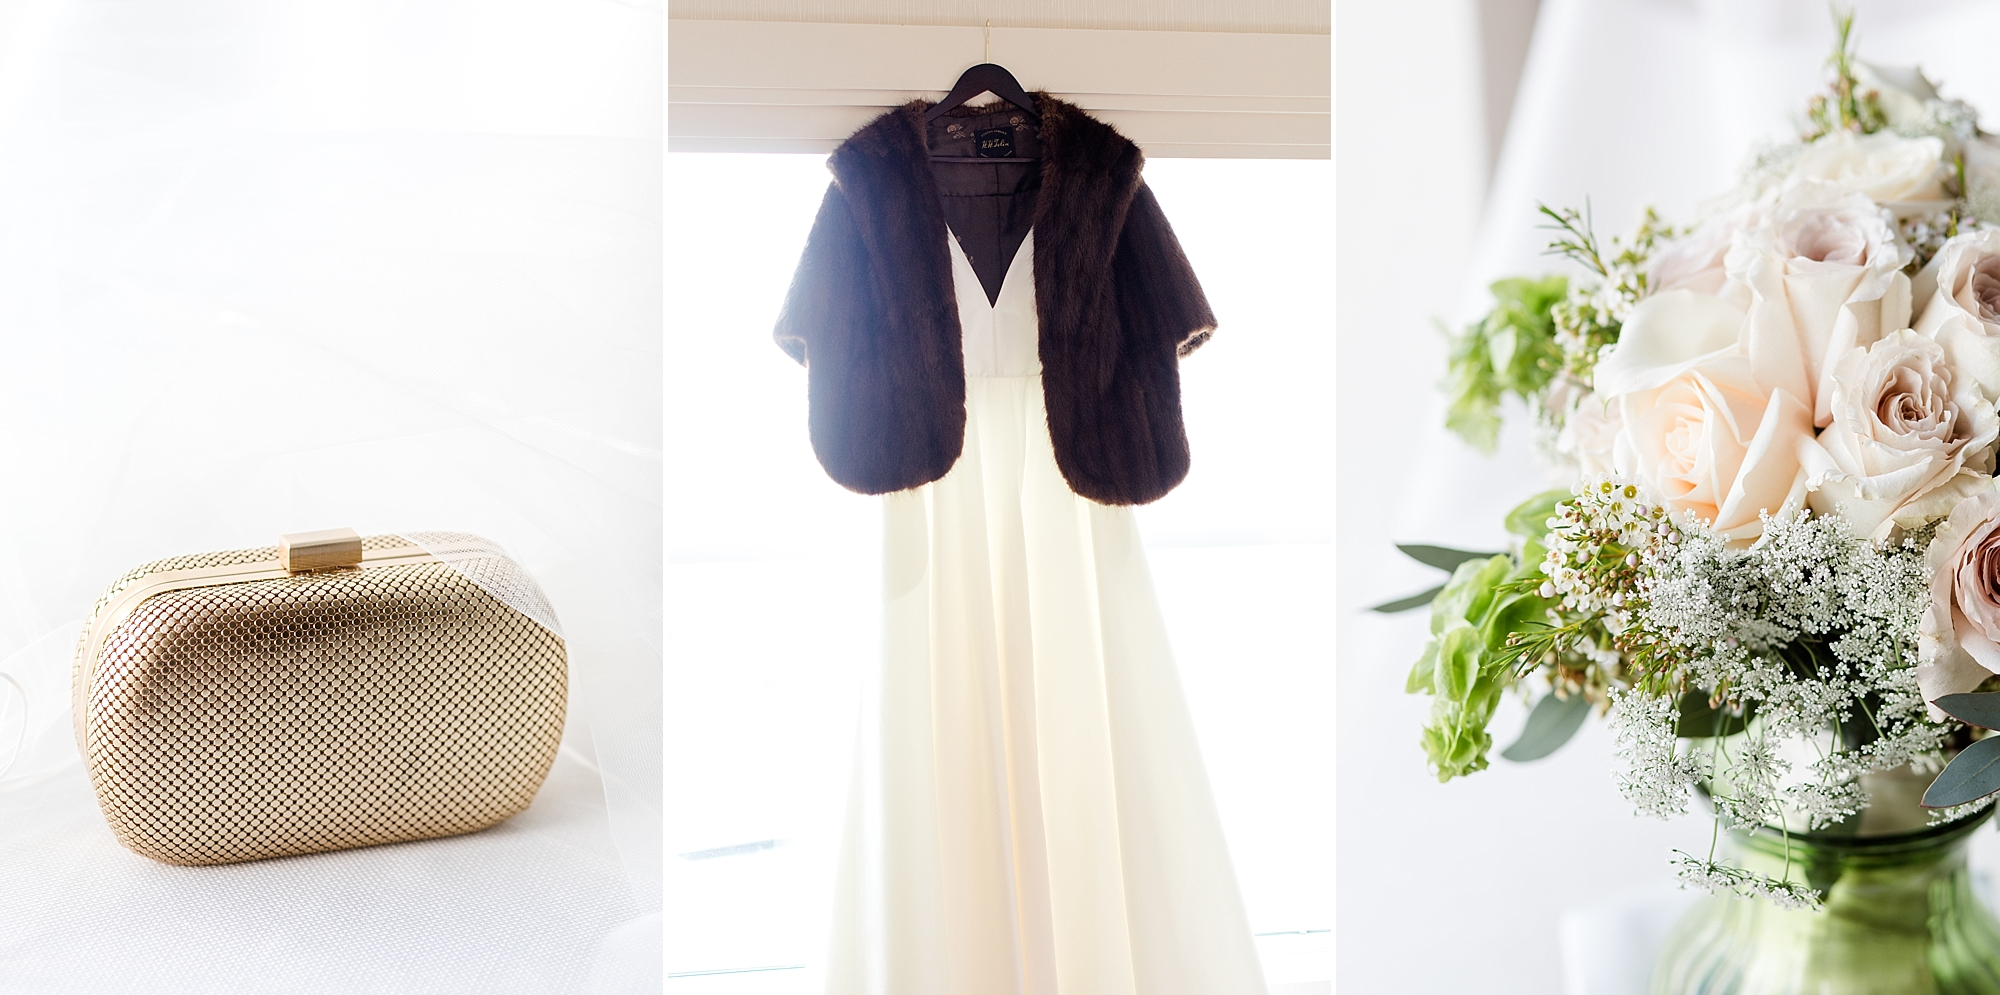 Bridal Details - the mink stole was an heirloom from her Grandmother's